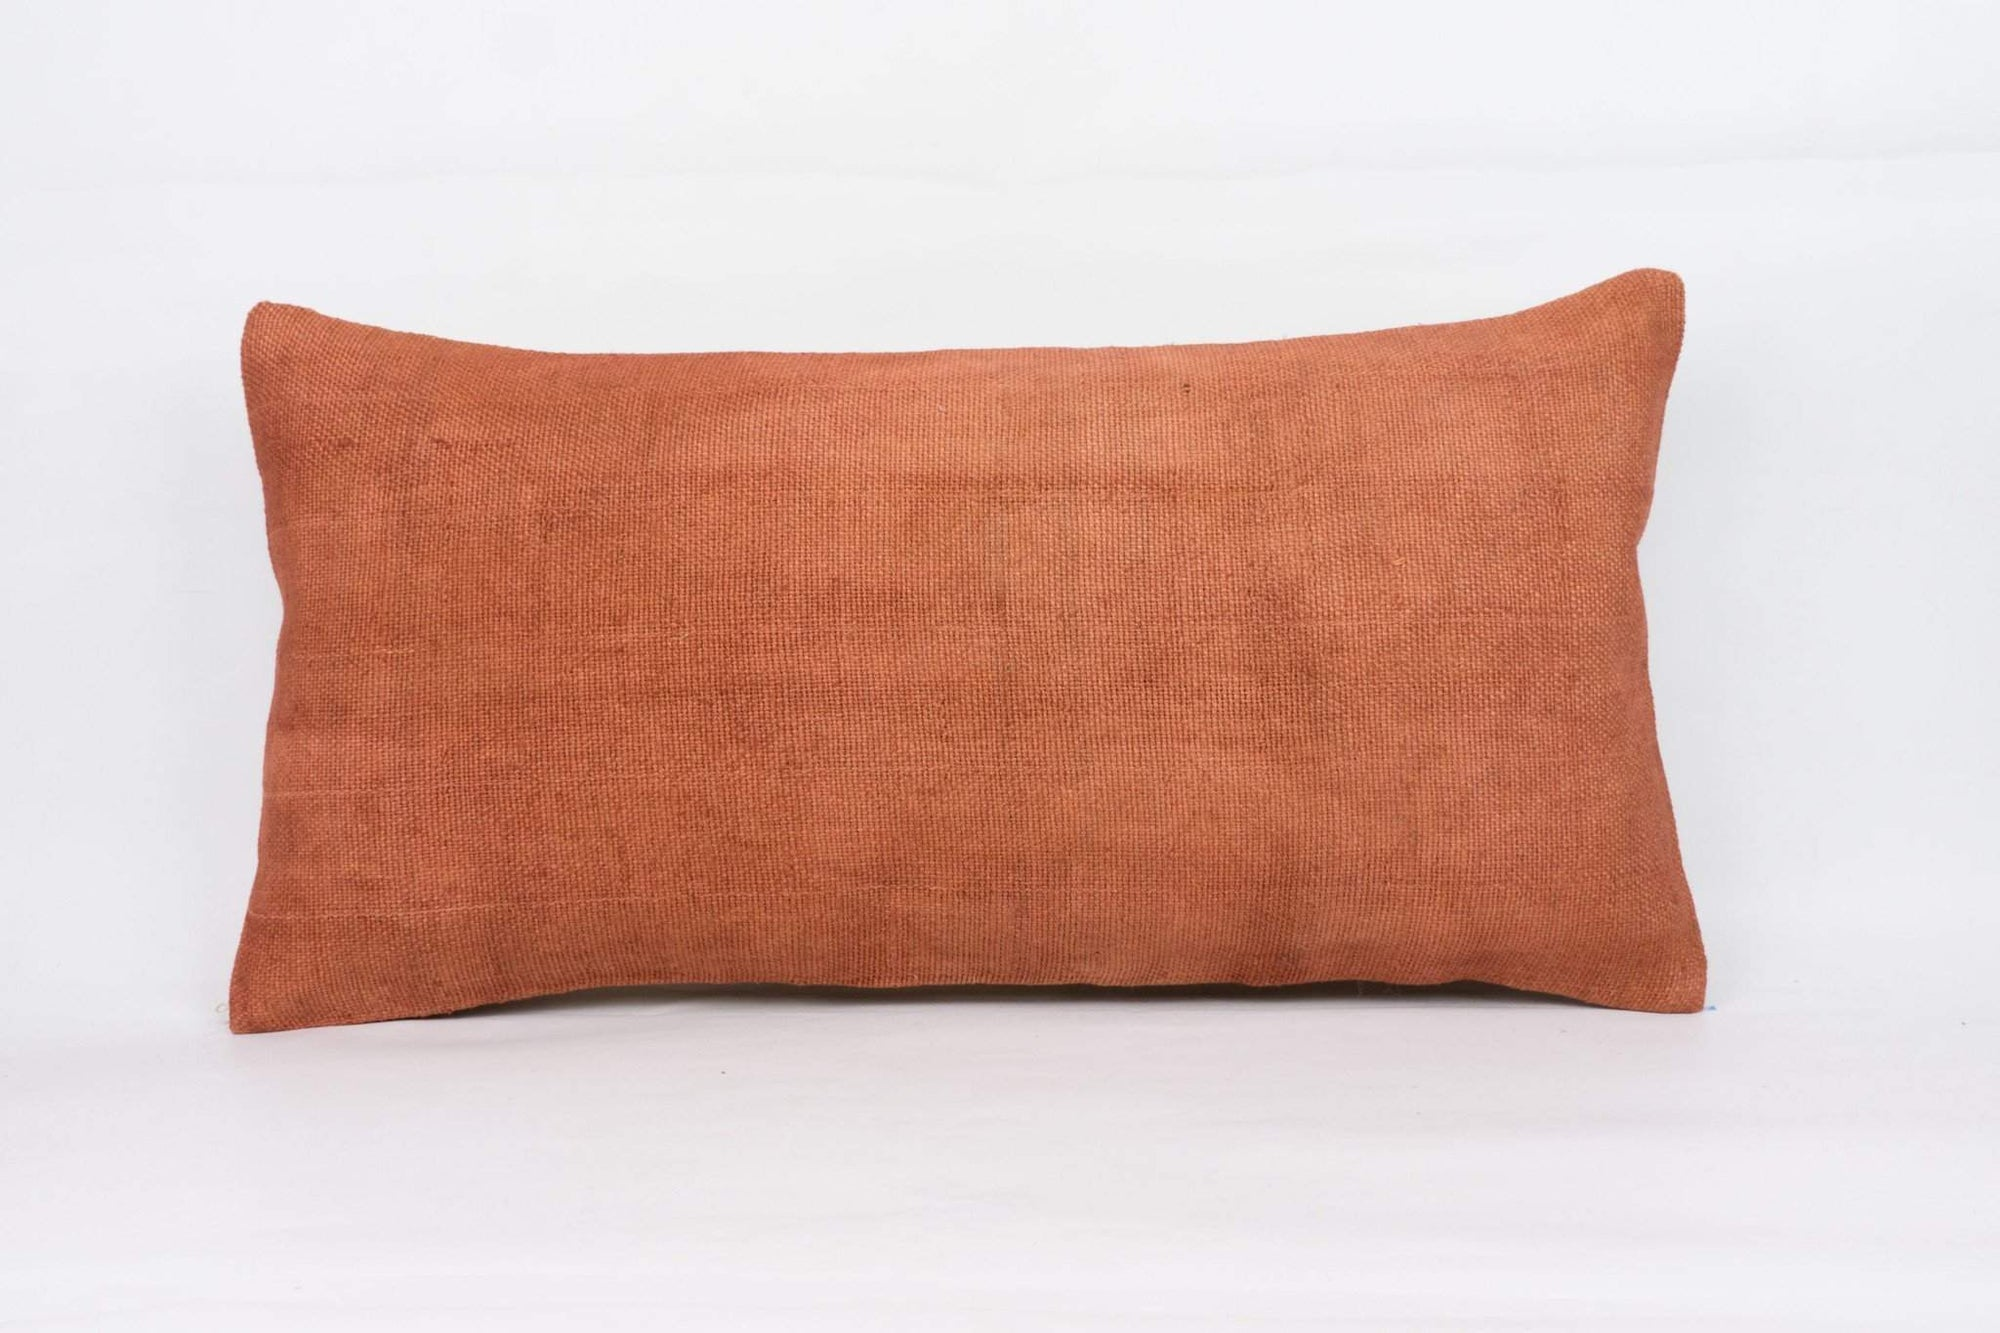 Plain Brown Kilim Pillow Cover 12x24 4207 - kilimpillowstore  - 1